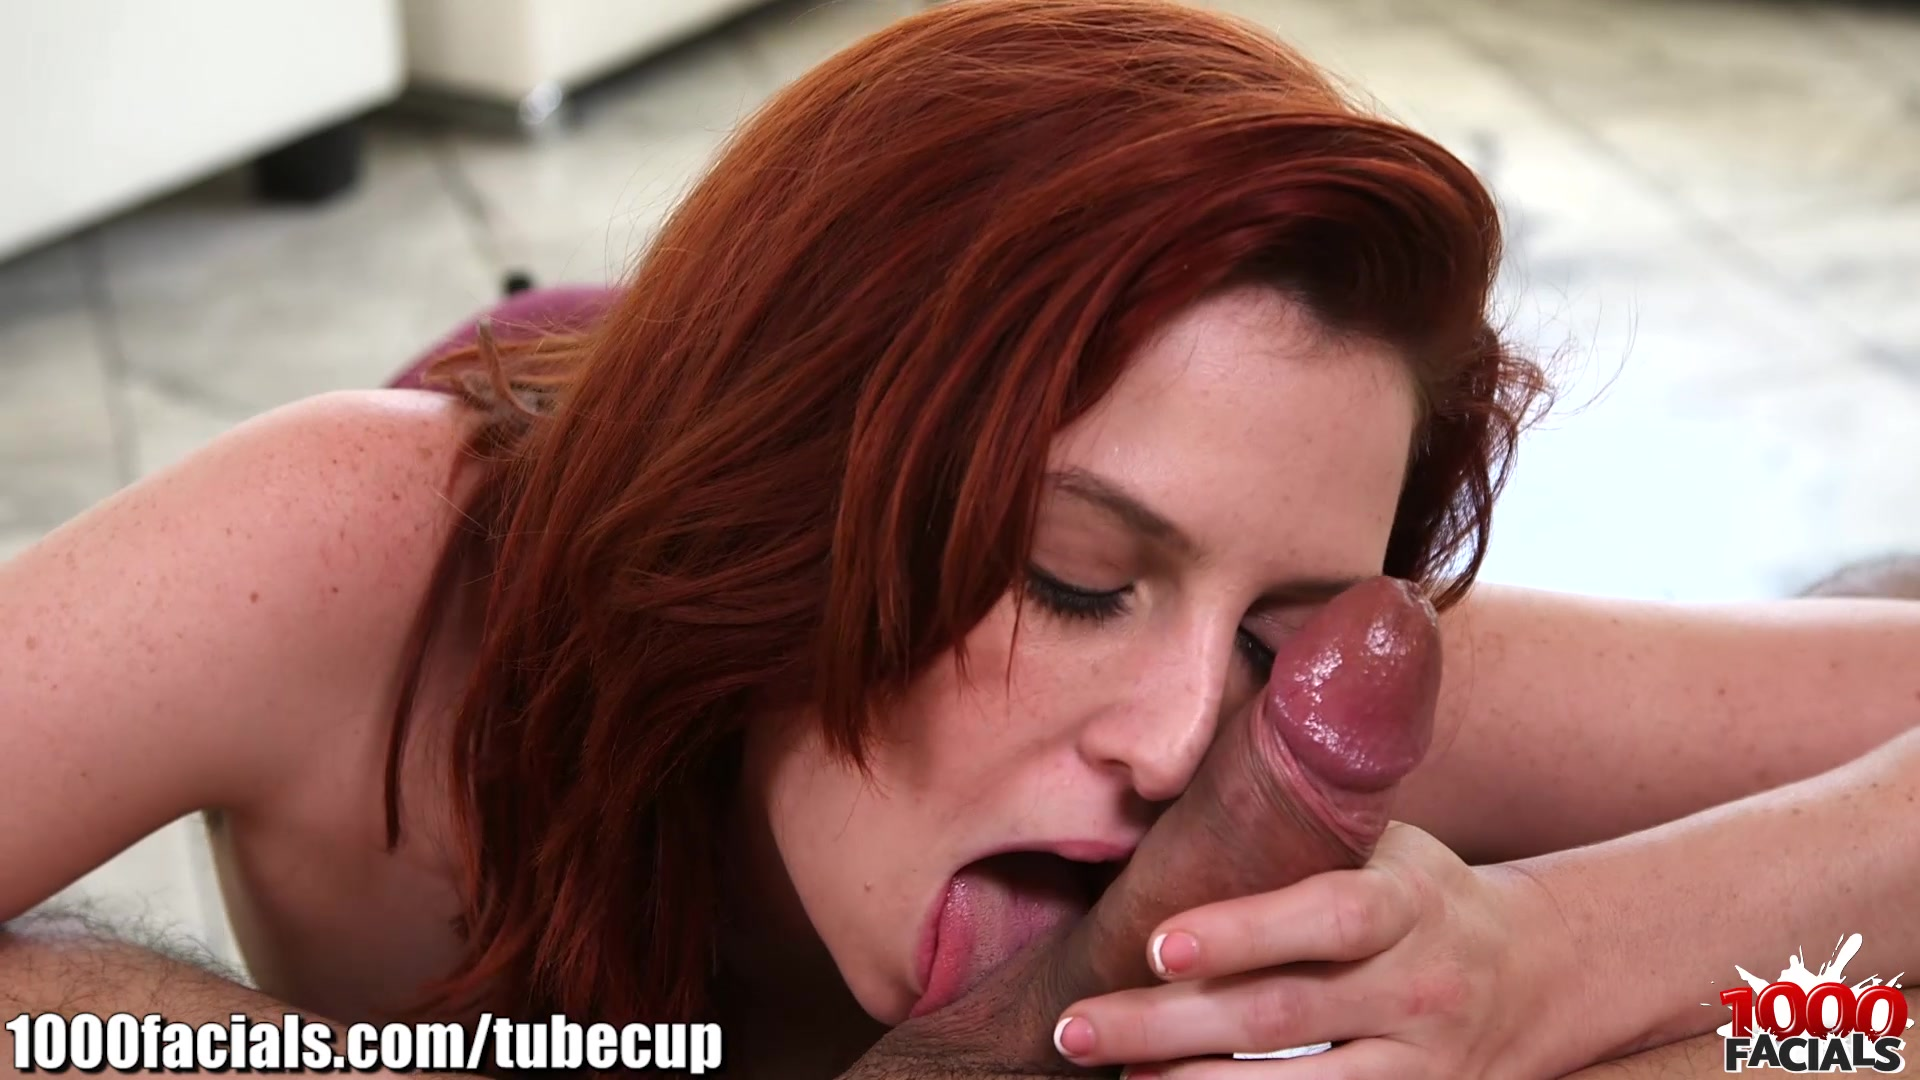 1000facials my cock spitting on a redhead bitch039s forhead 8